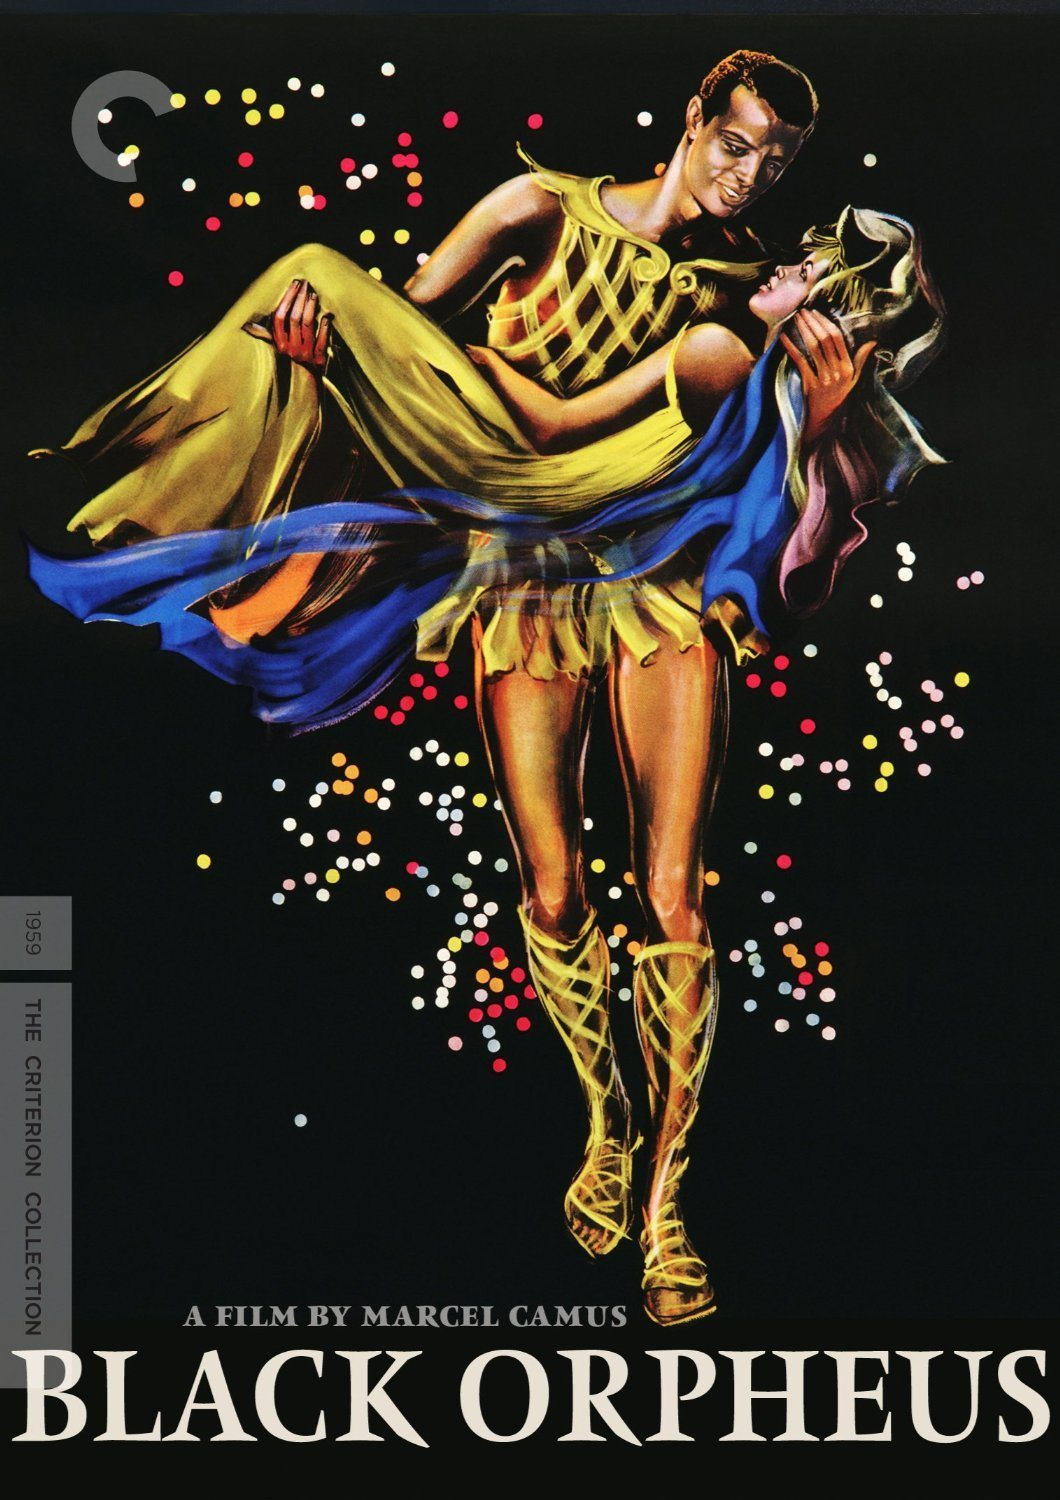 black orpheus brazilian film